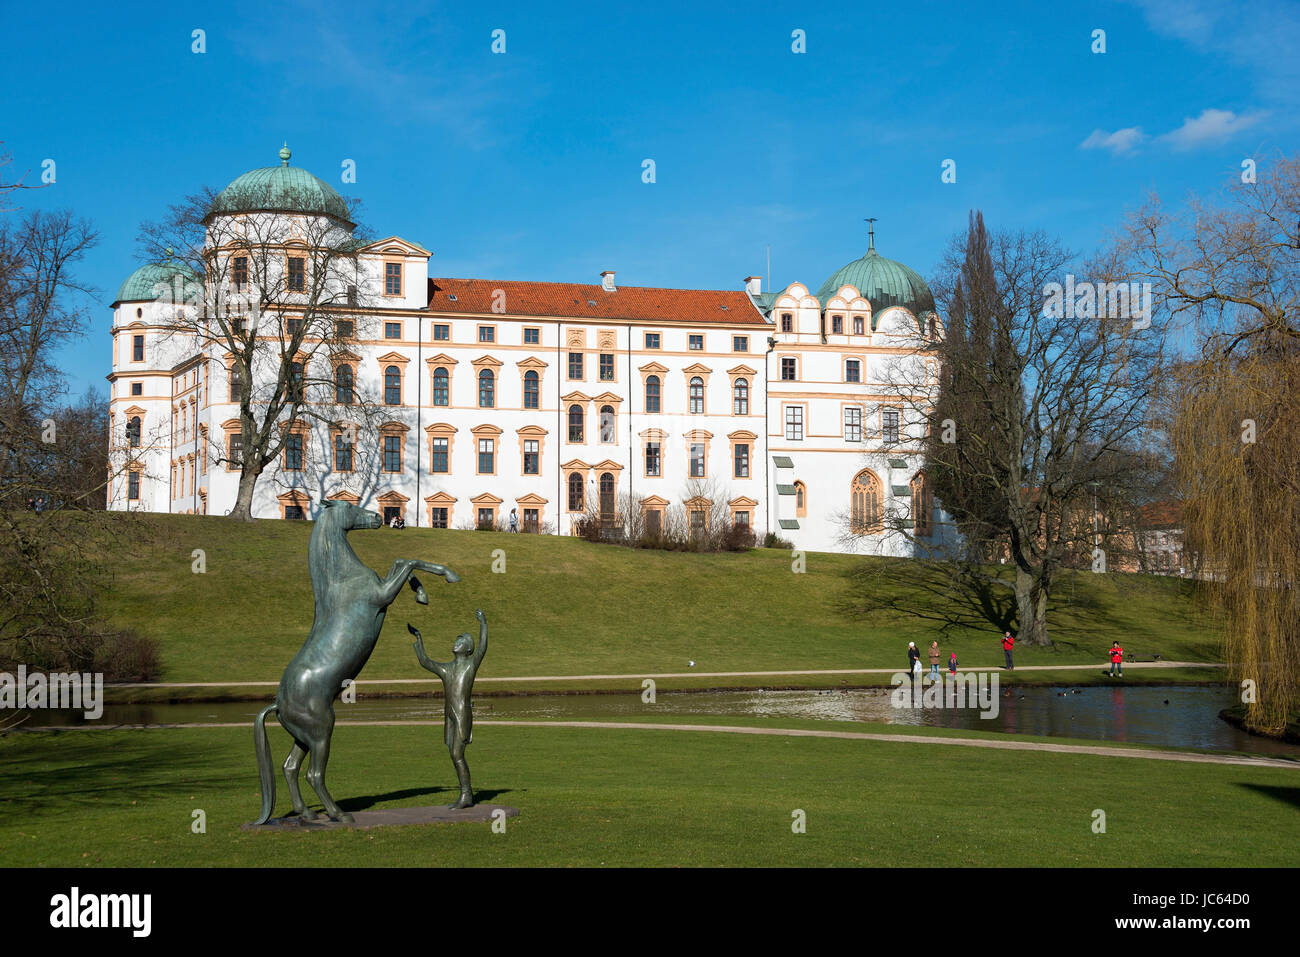 Duke's castle |Herzogschloss, stallion builds in 1292, bronze figure melodious sound in the freedom training, - Stock Image